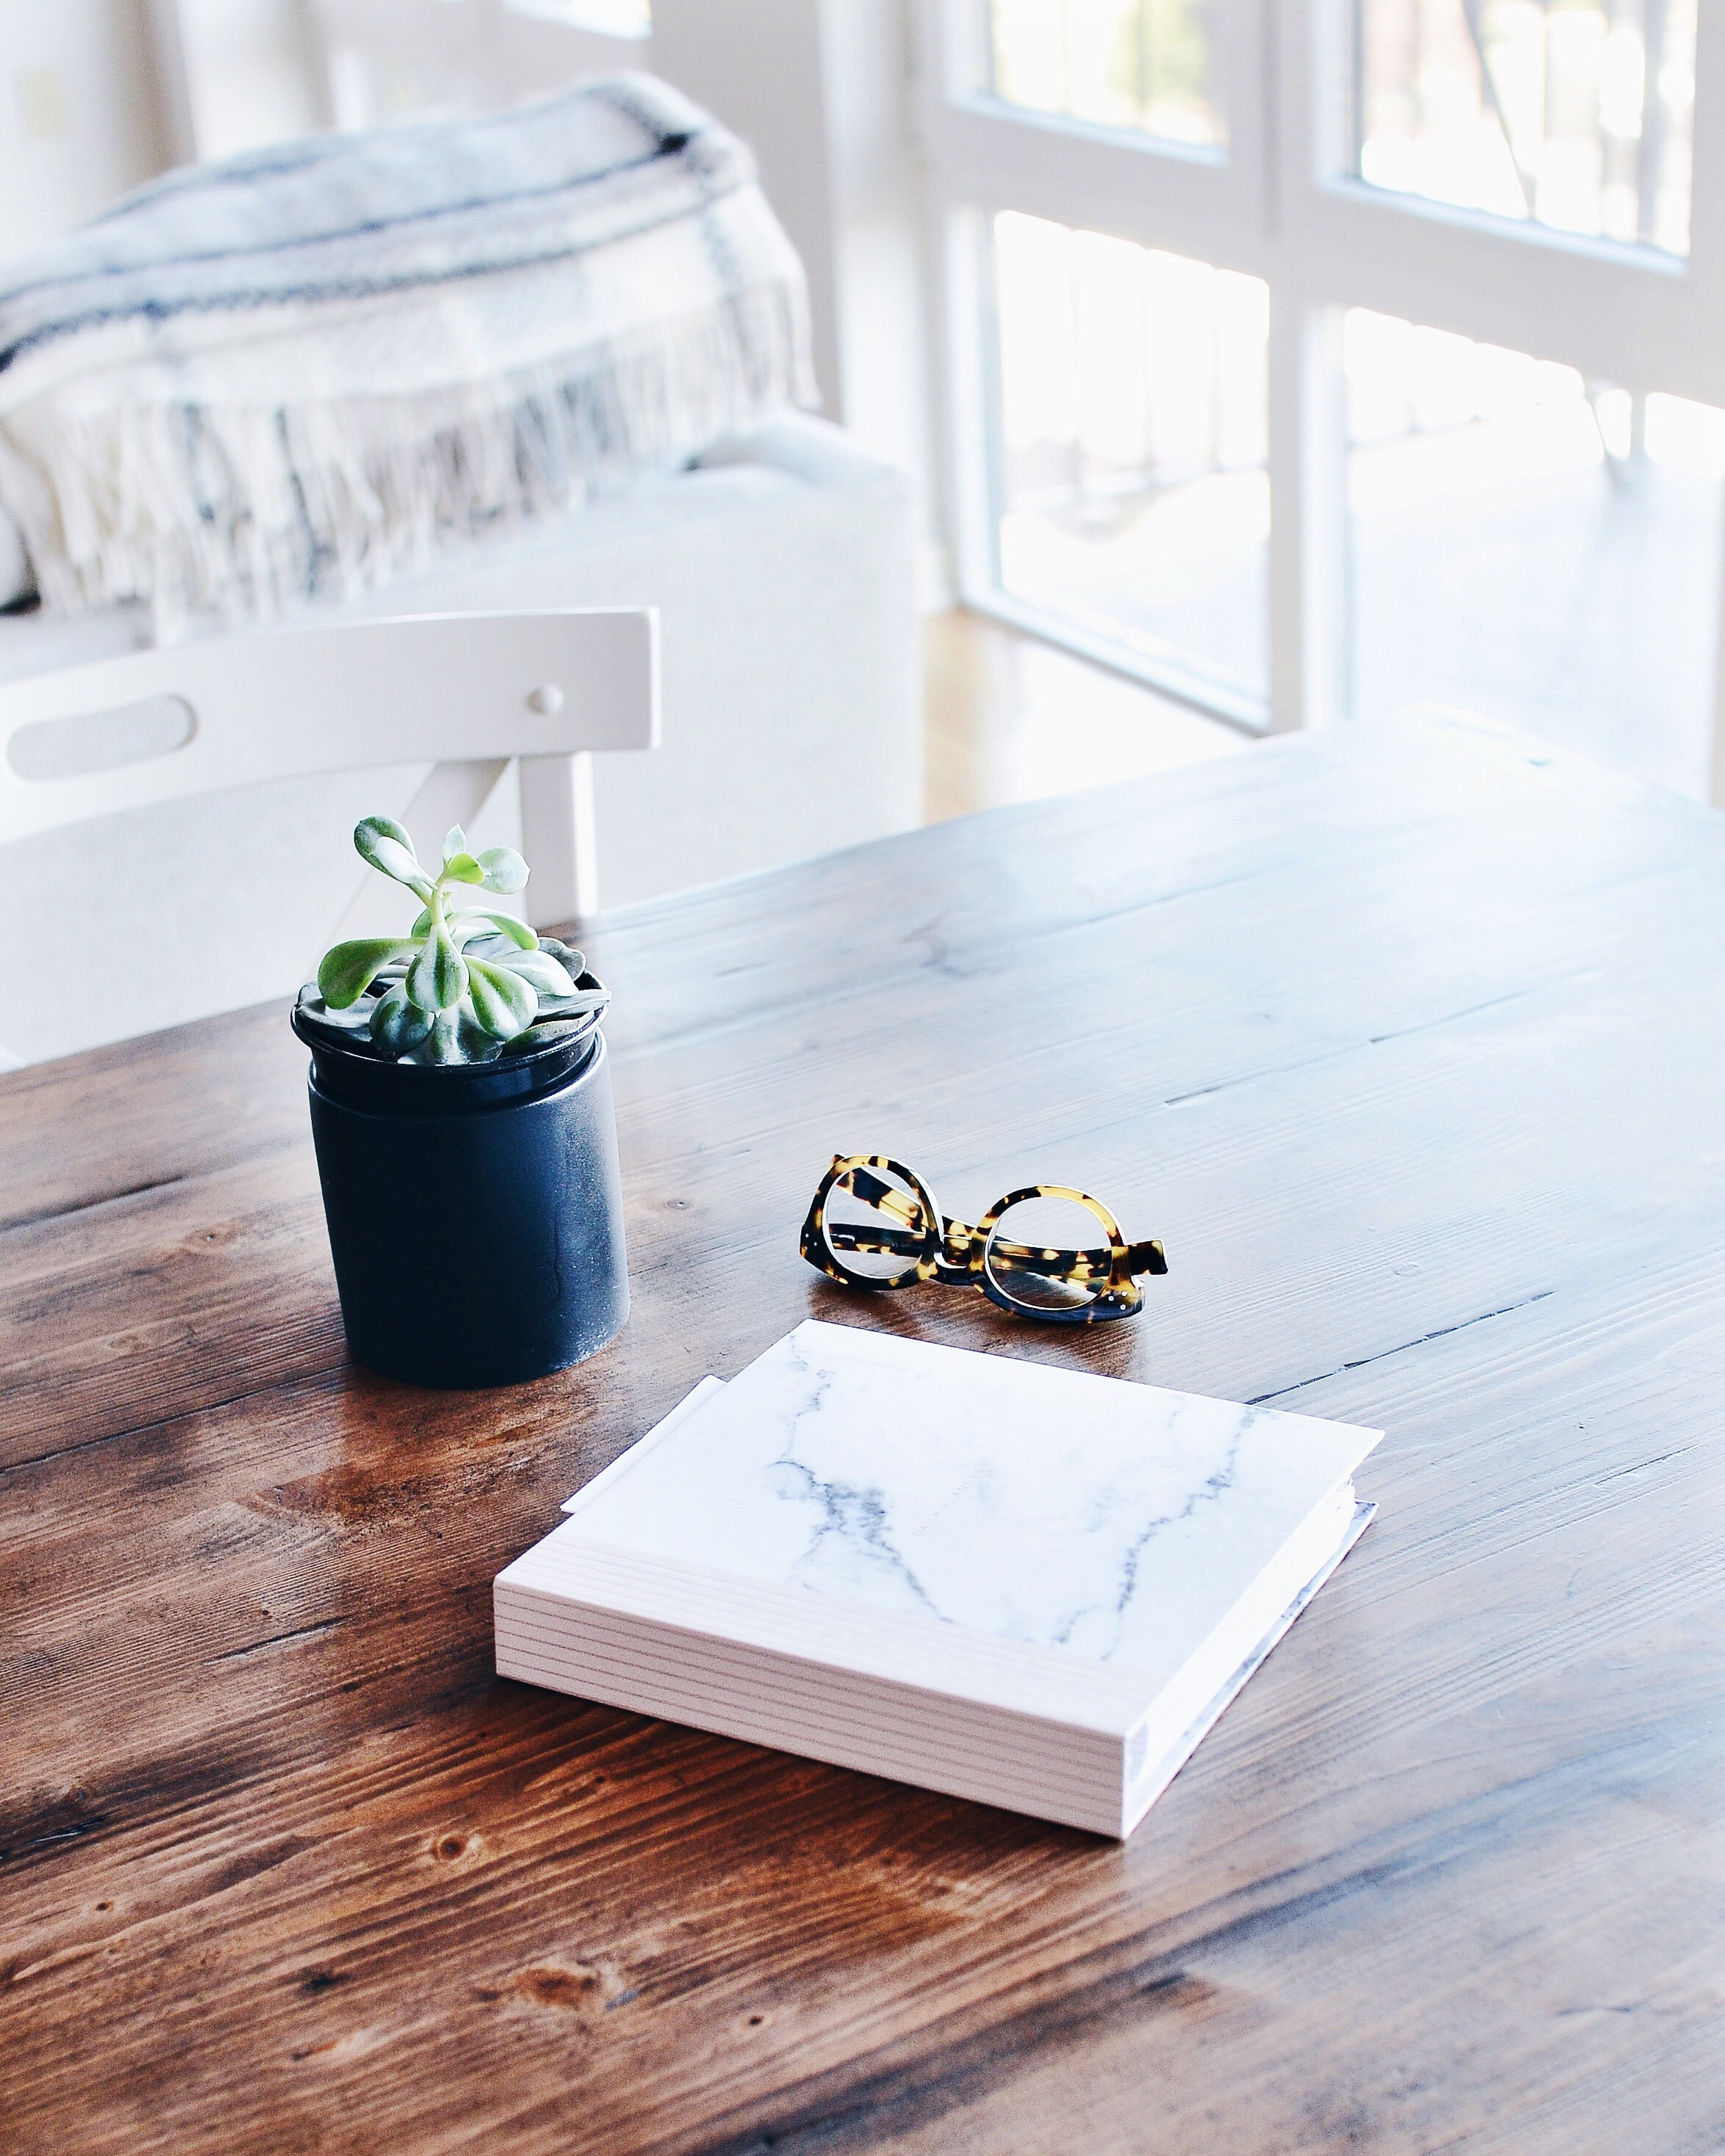 A potted plant, an album and a pair of glasses on a wooden table in a bright interior